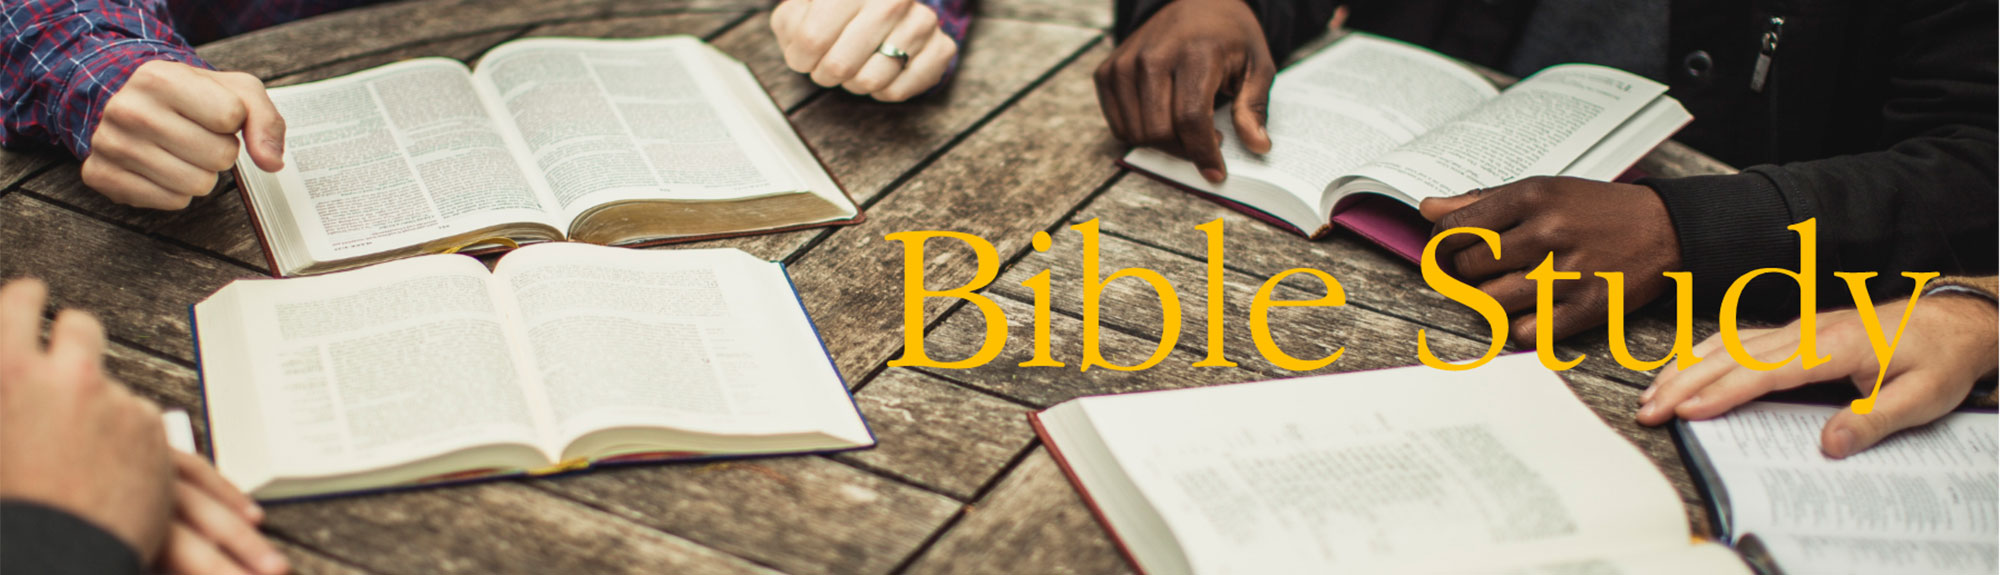 an analysis of the bible which offers information for guidance and faith Repentance is no more a meritorious work than its counterpart, faith it is an inward response genuine repentance pleads with the lord to forgive and deliver from the burden of sin and the fear of j.